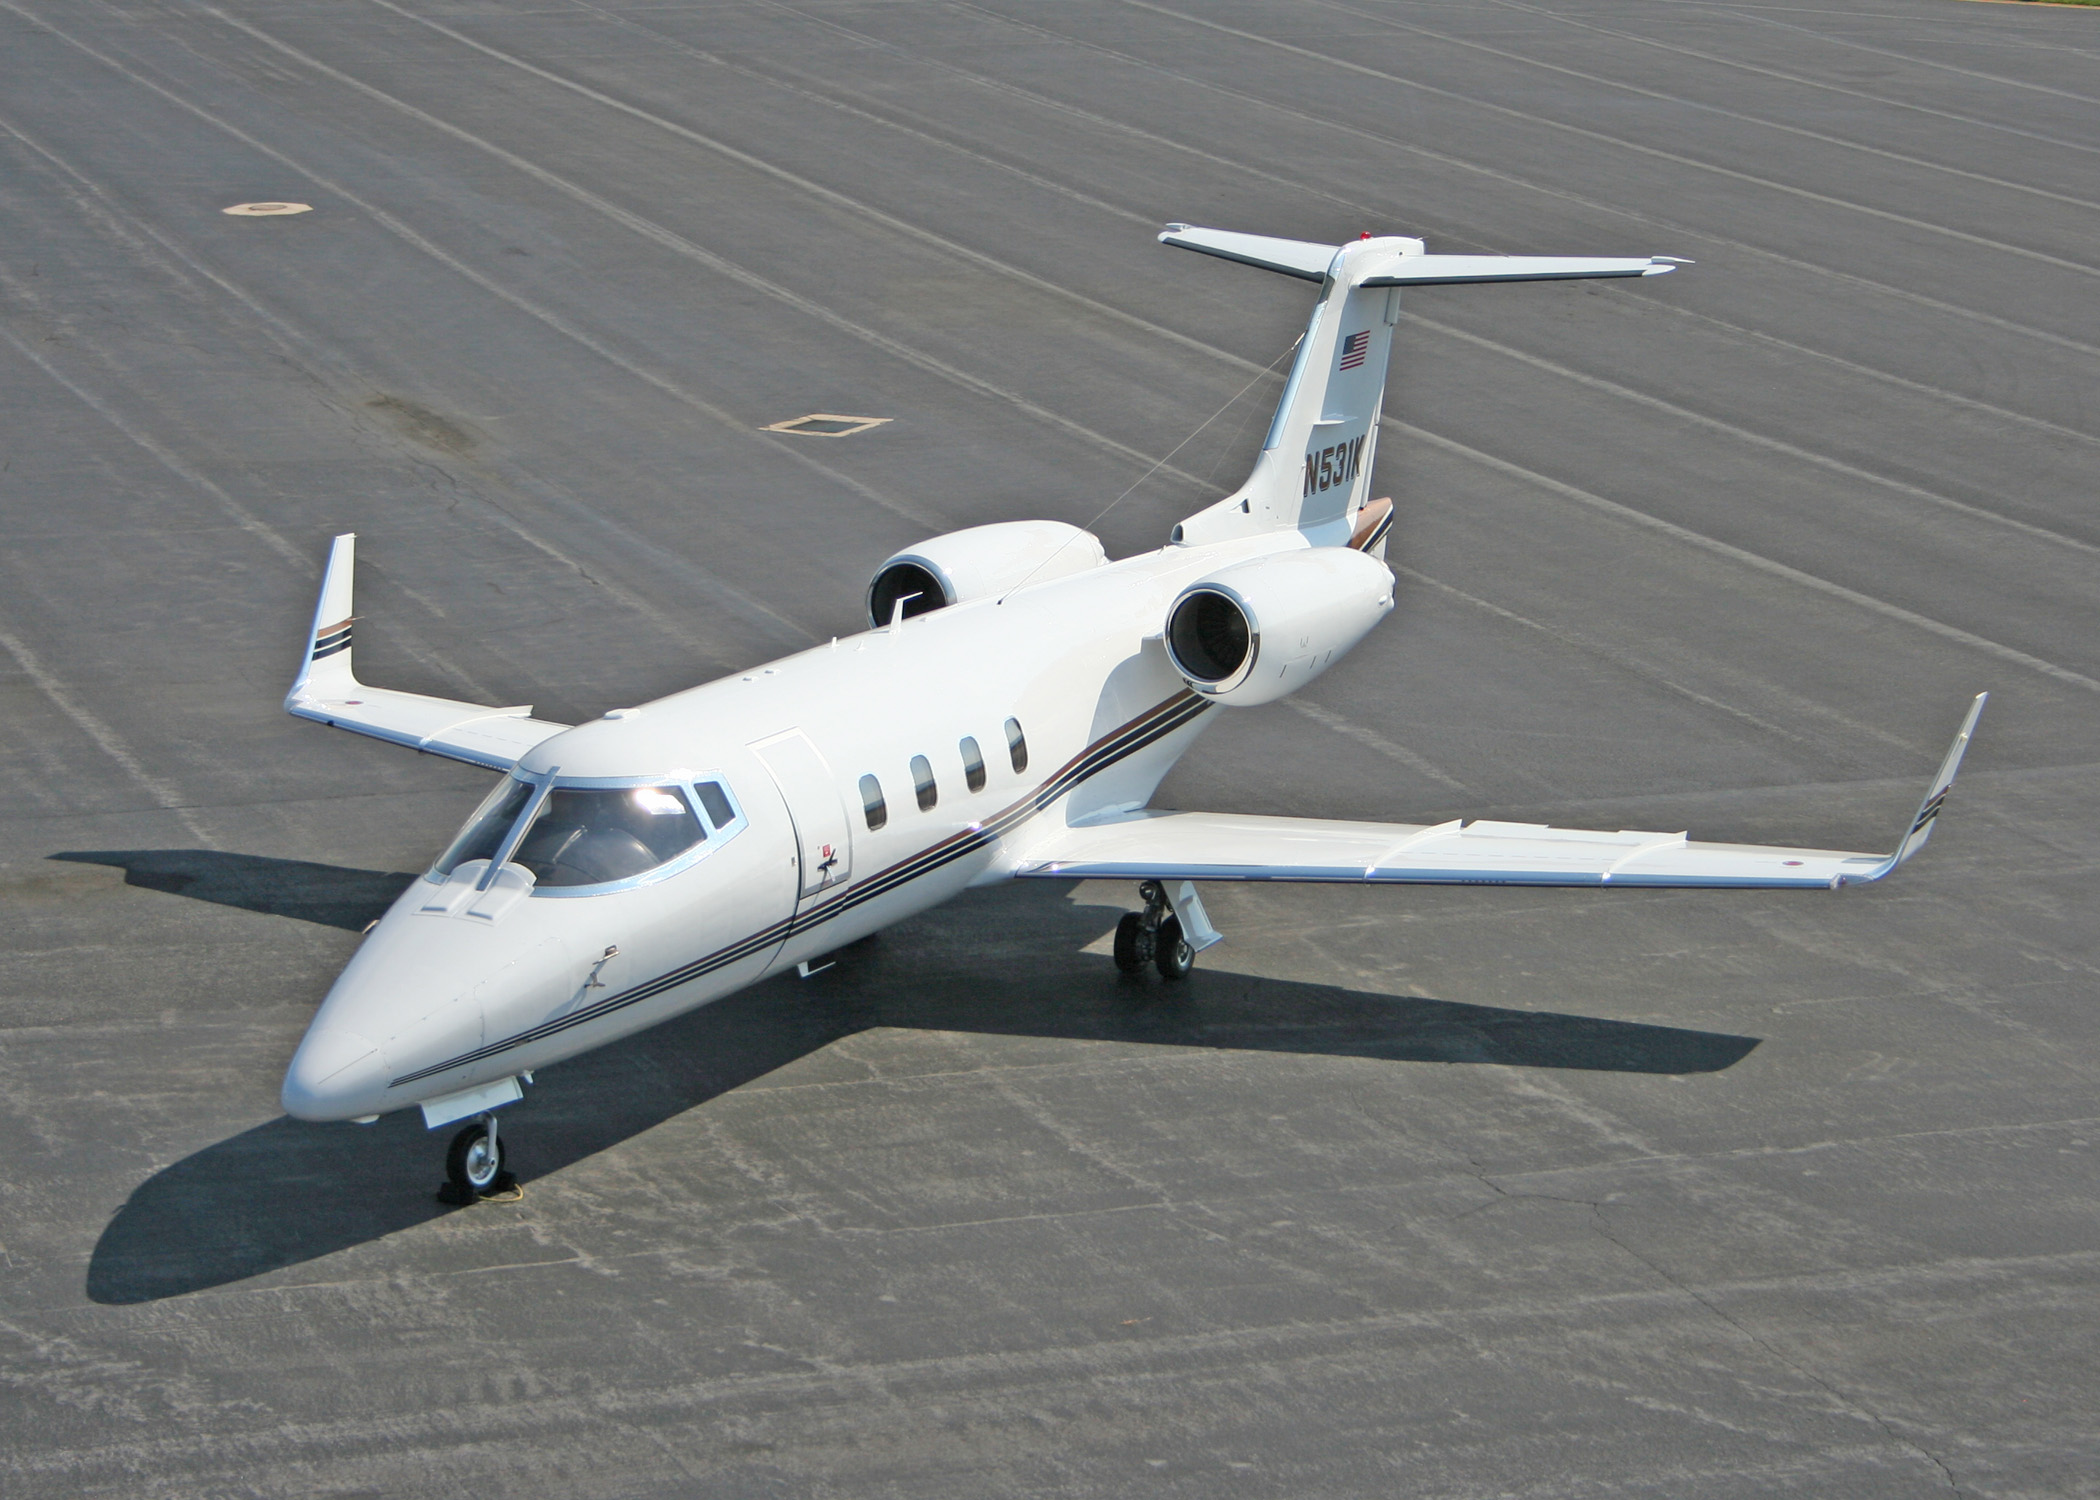 Learjet 55 aircharter is a full service private jet charter company serving the New York and Teterboro area.